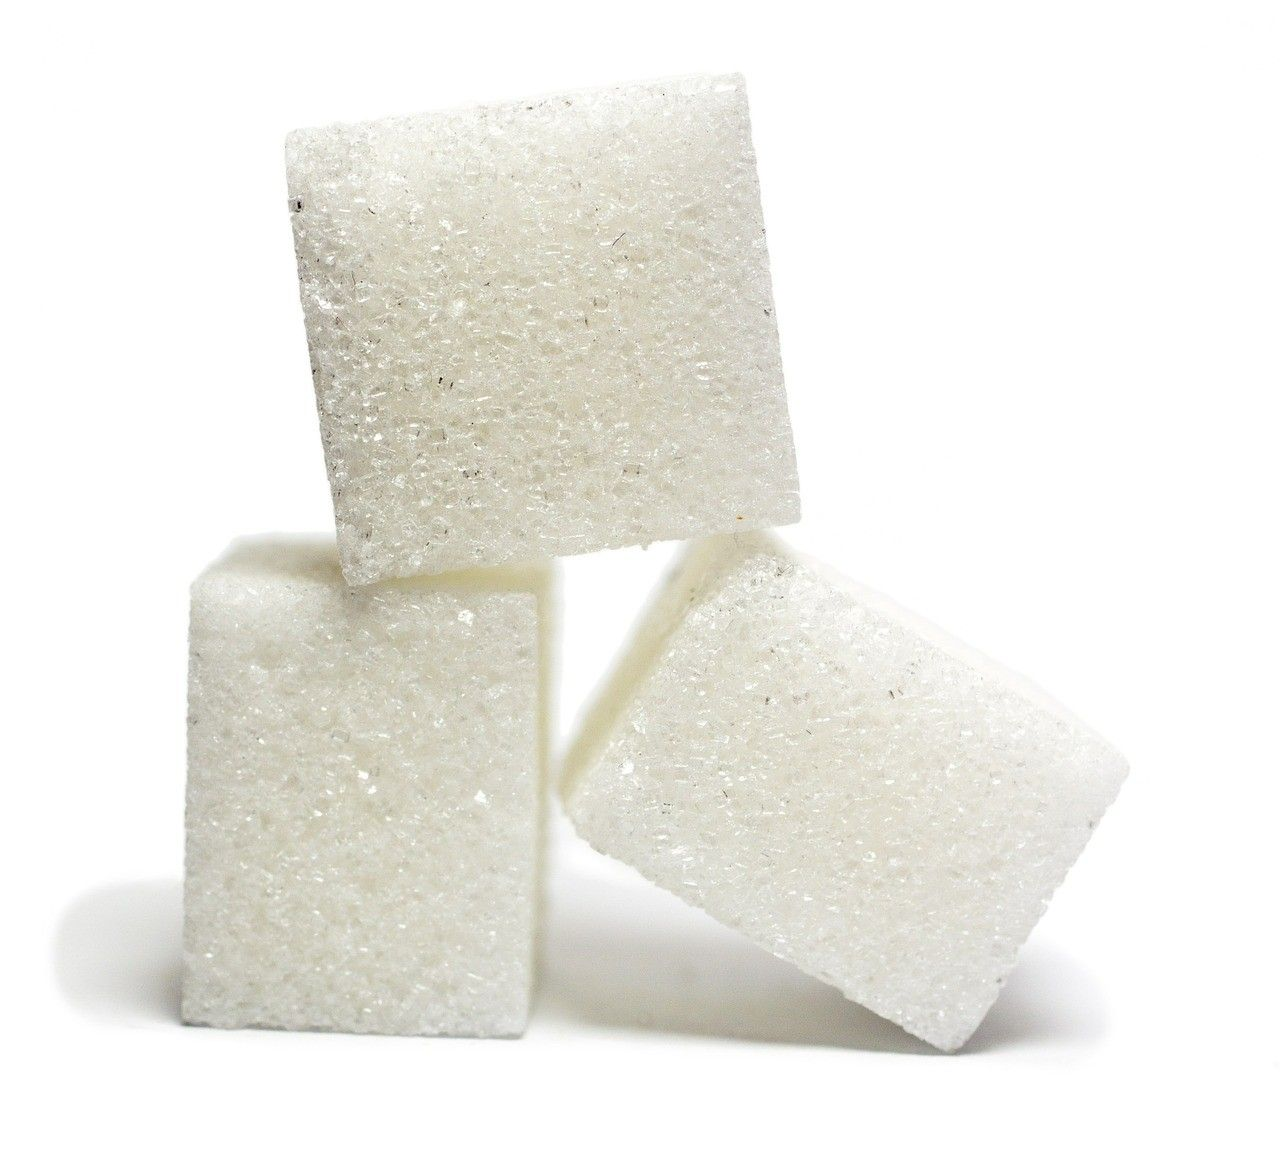 Sugar: How much should we be consuming?